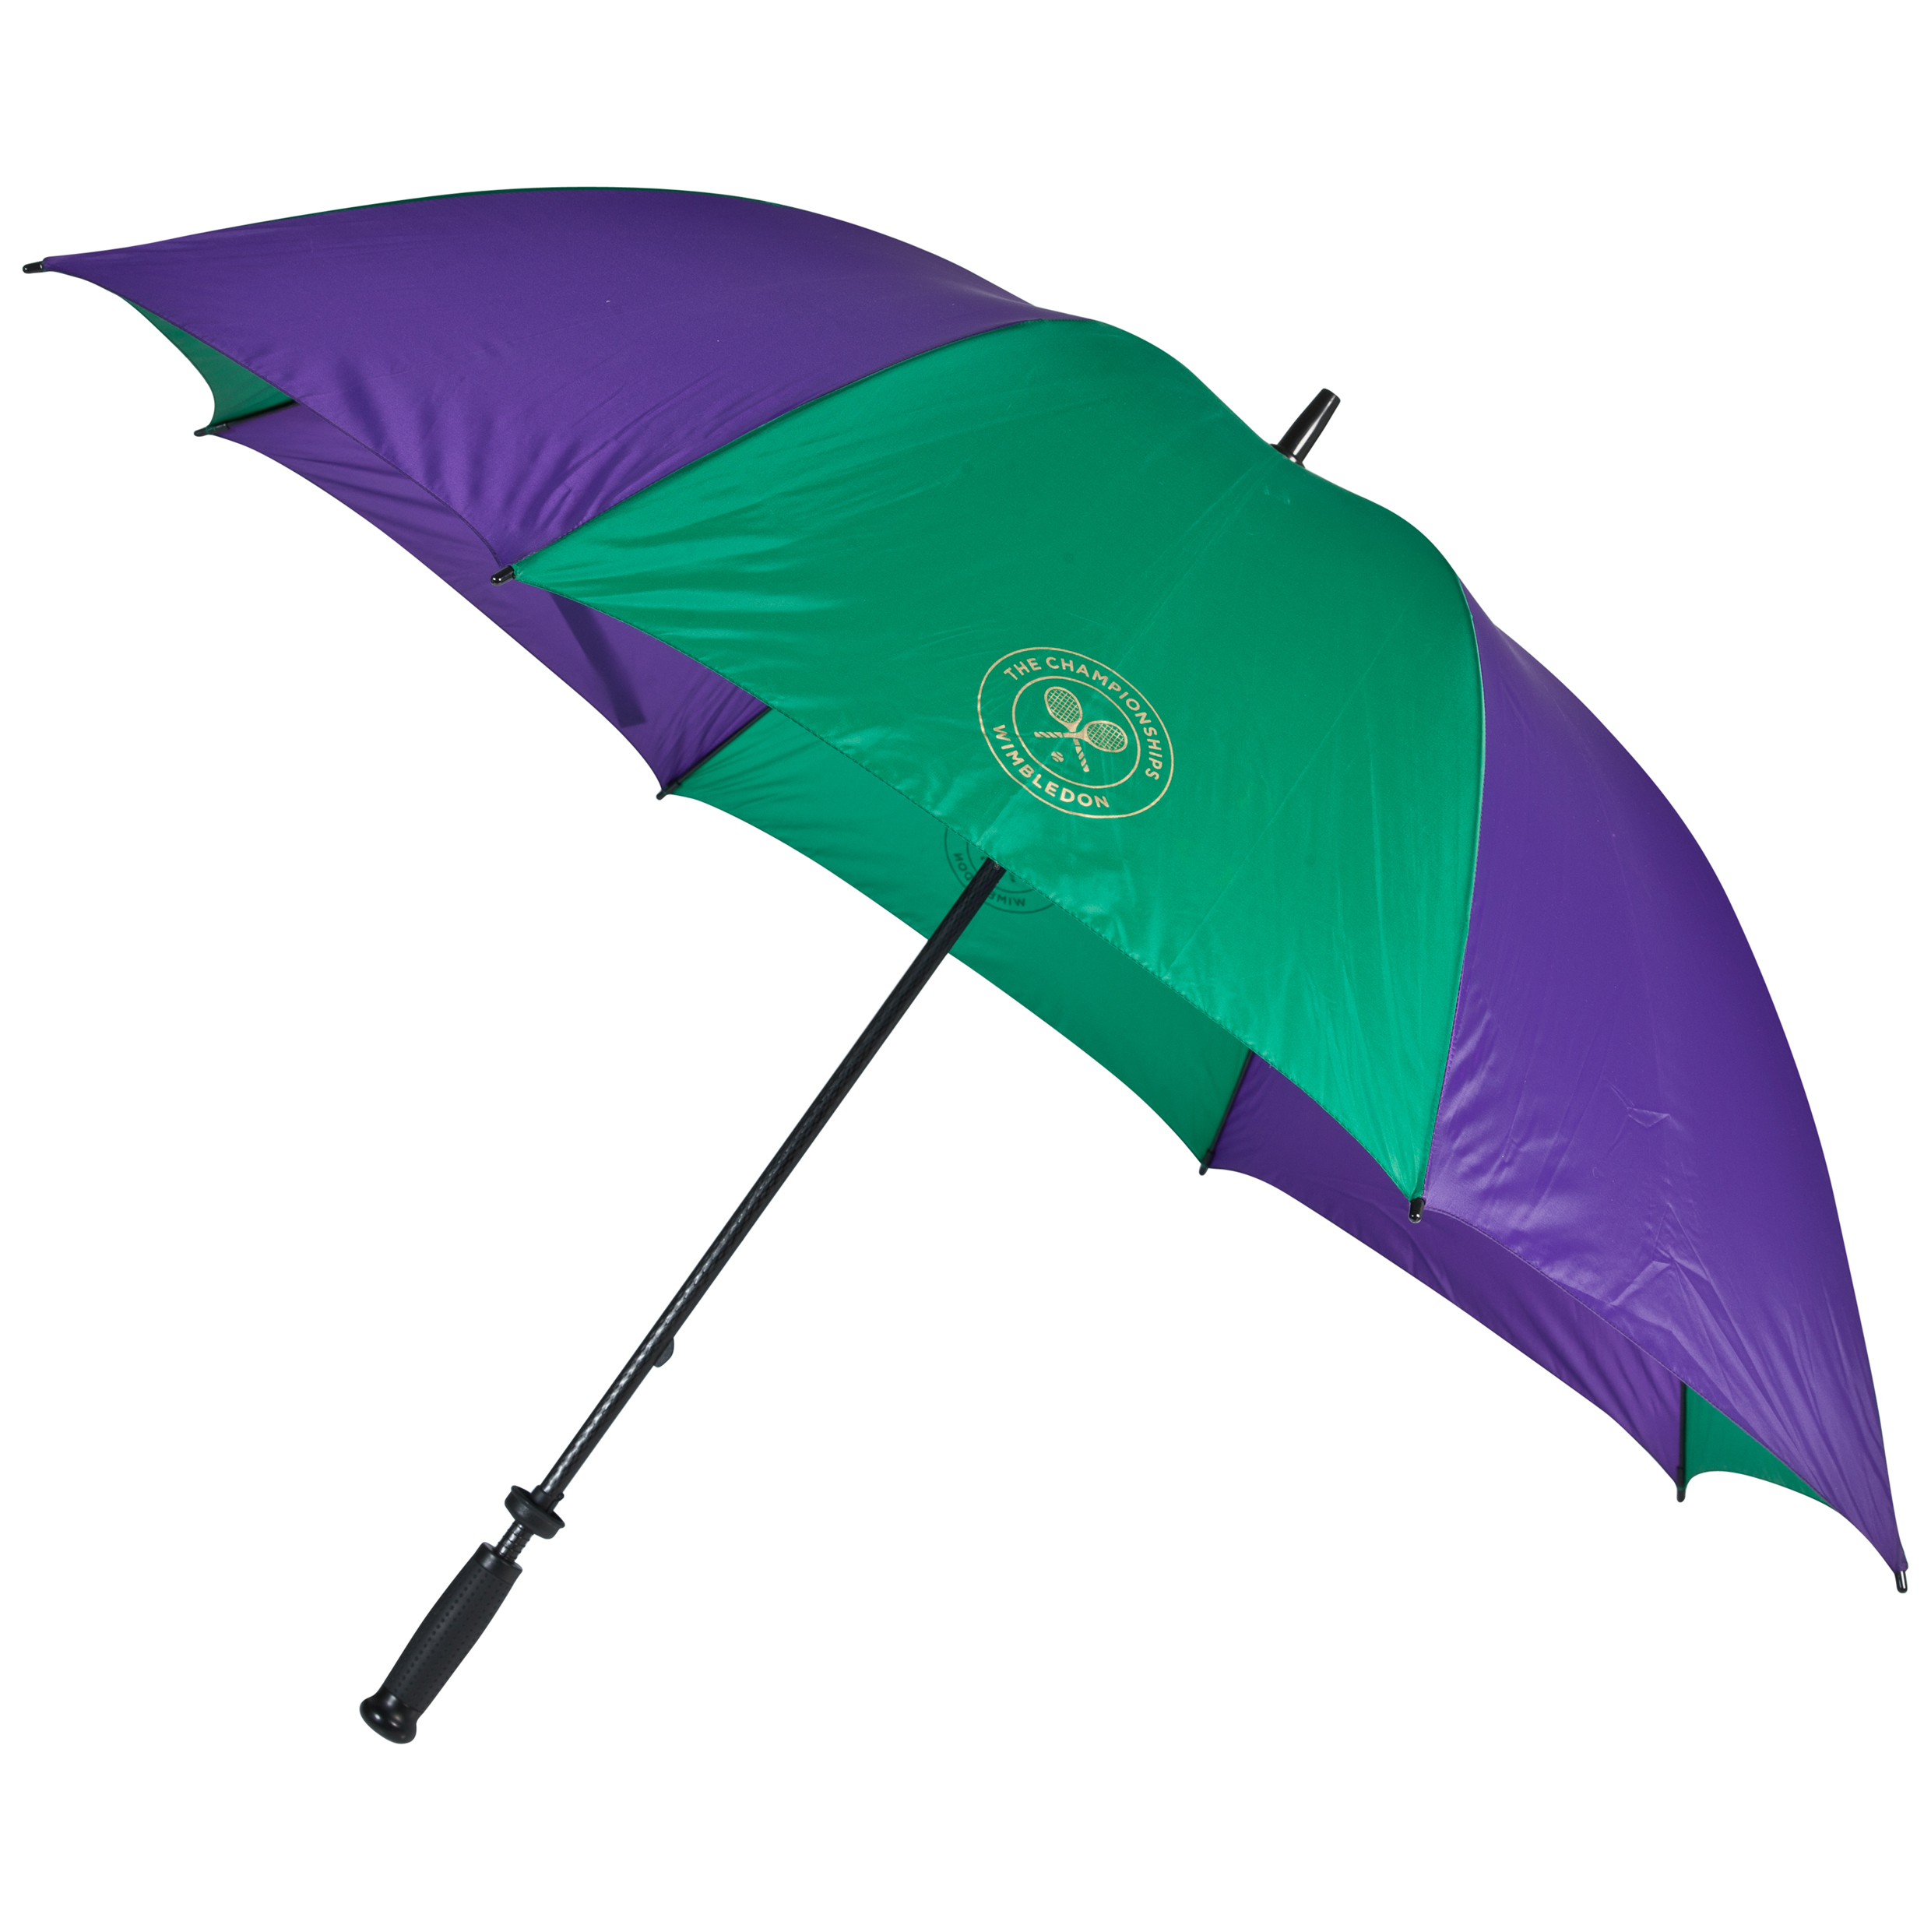 Wimbledon Large Golf Umbrella With Fibre-Glass Shaft Purple